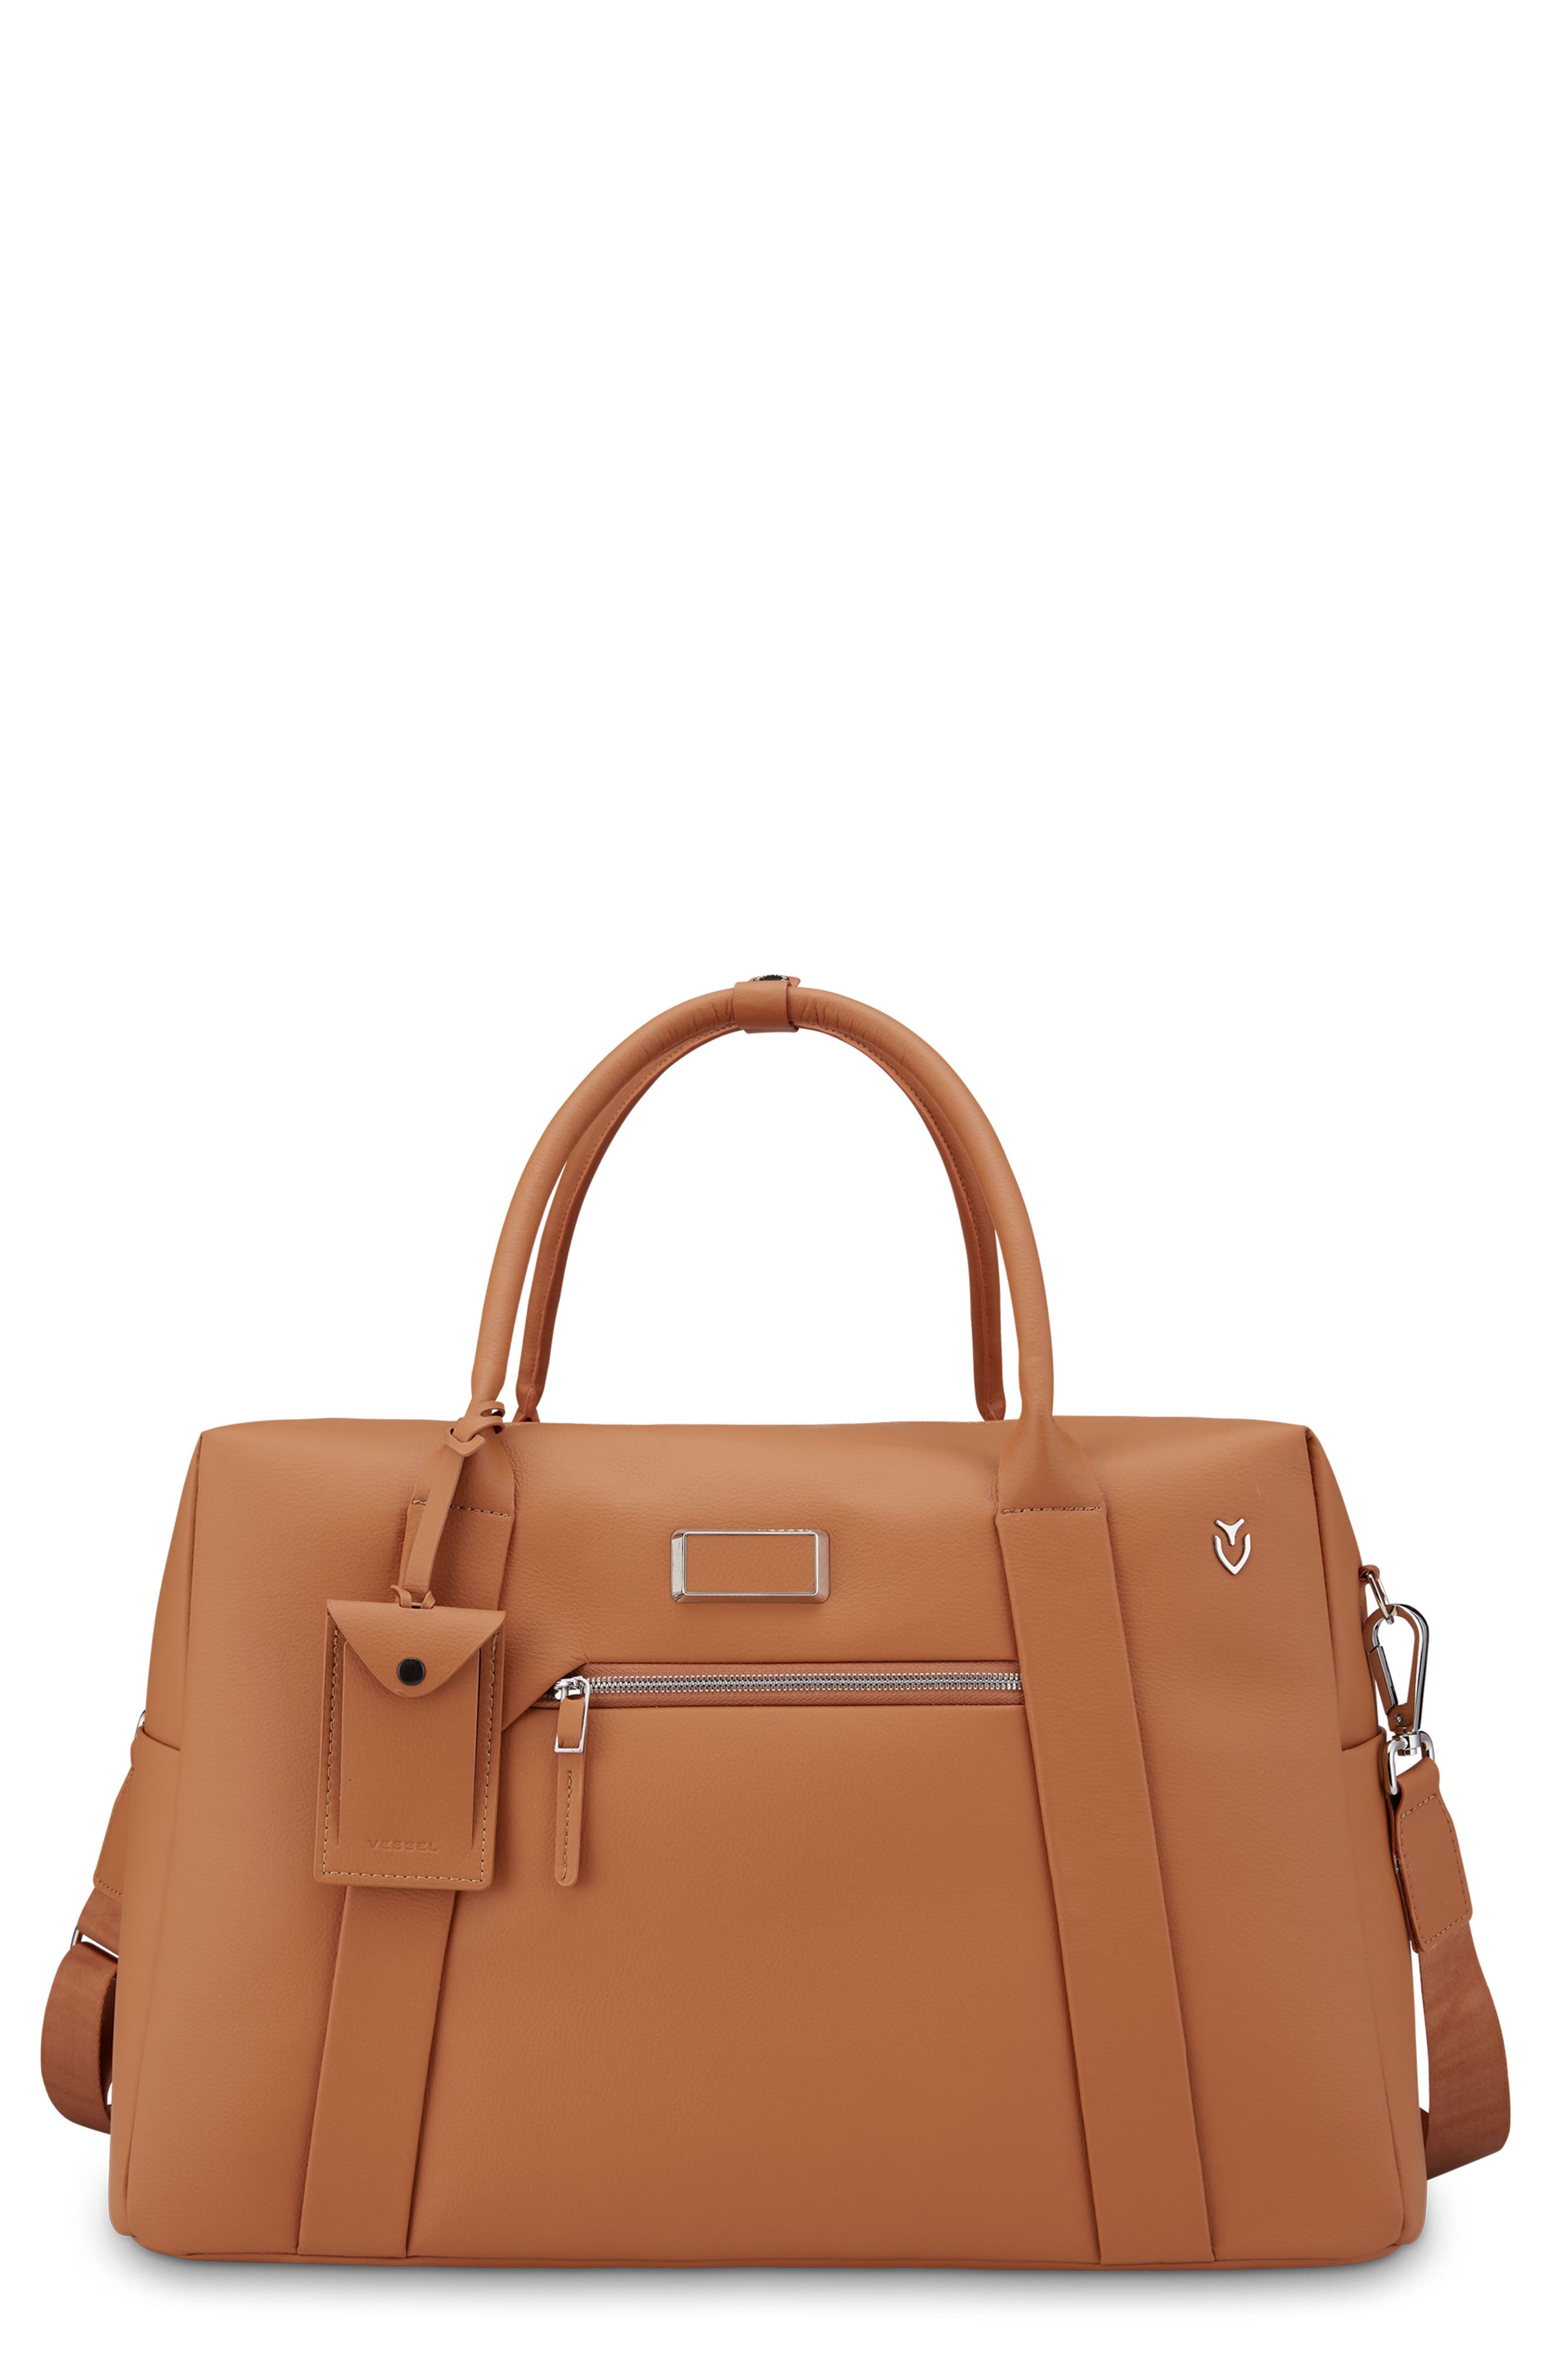 Signature 2.0 Faux Leather Duffel Bag,                         Main,                         color, Pebbled Tan